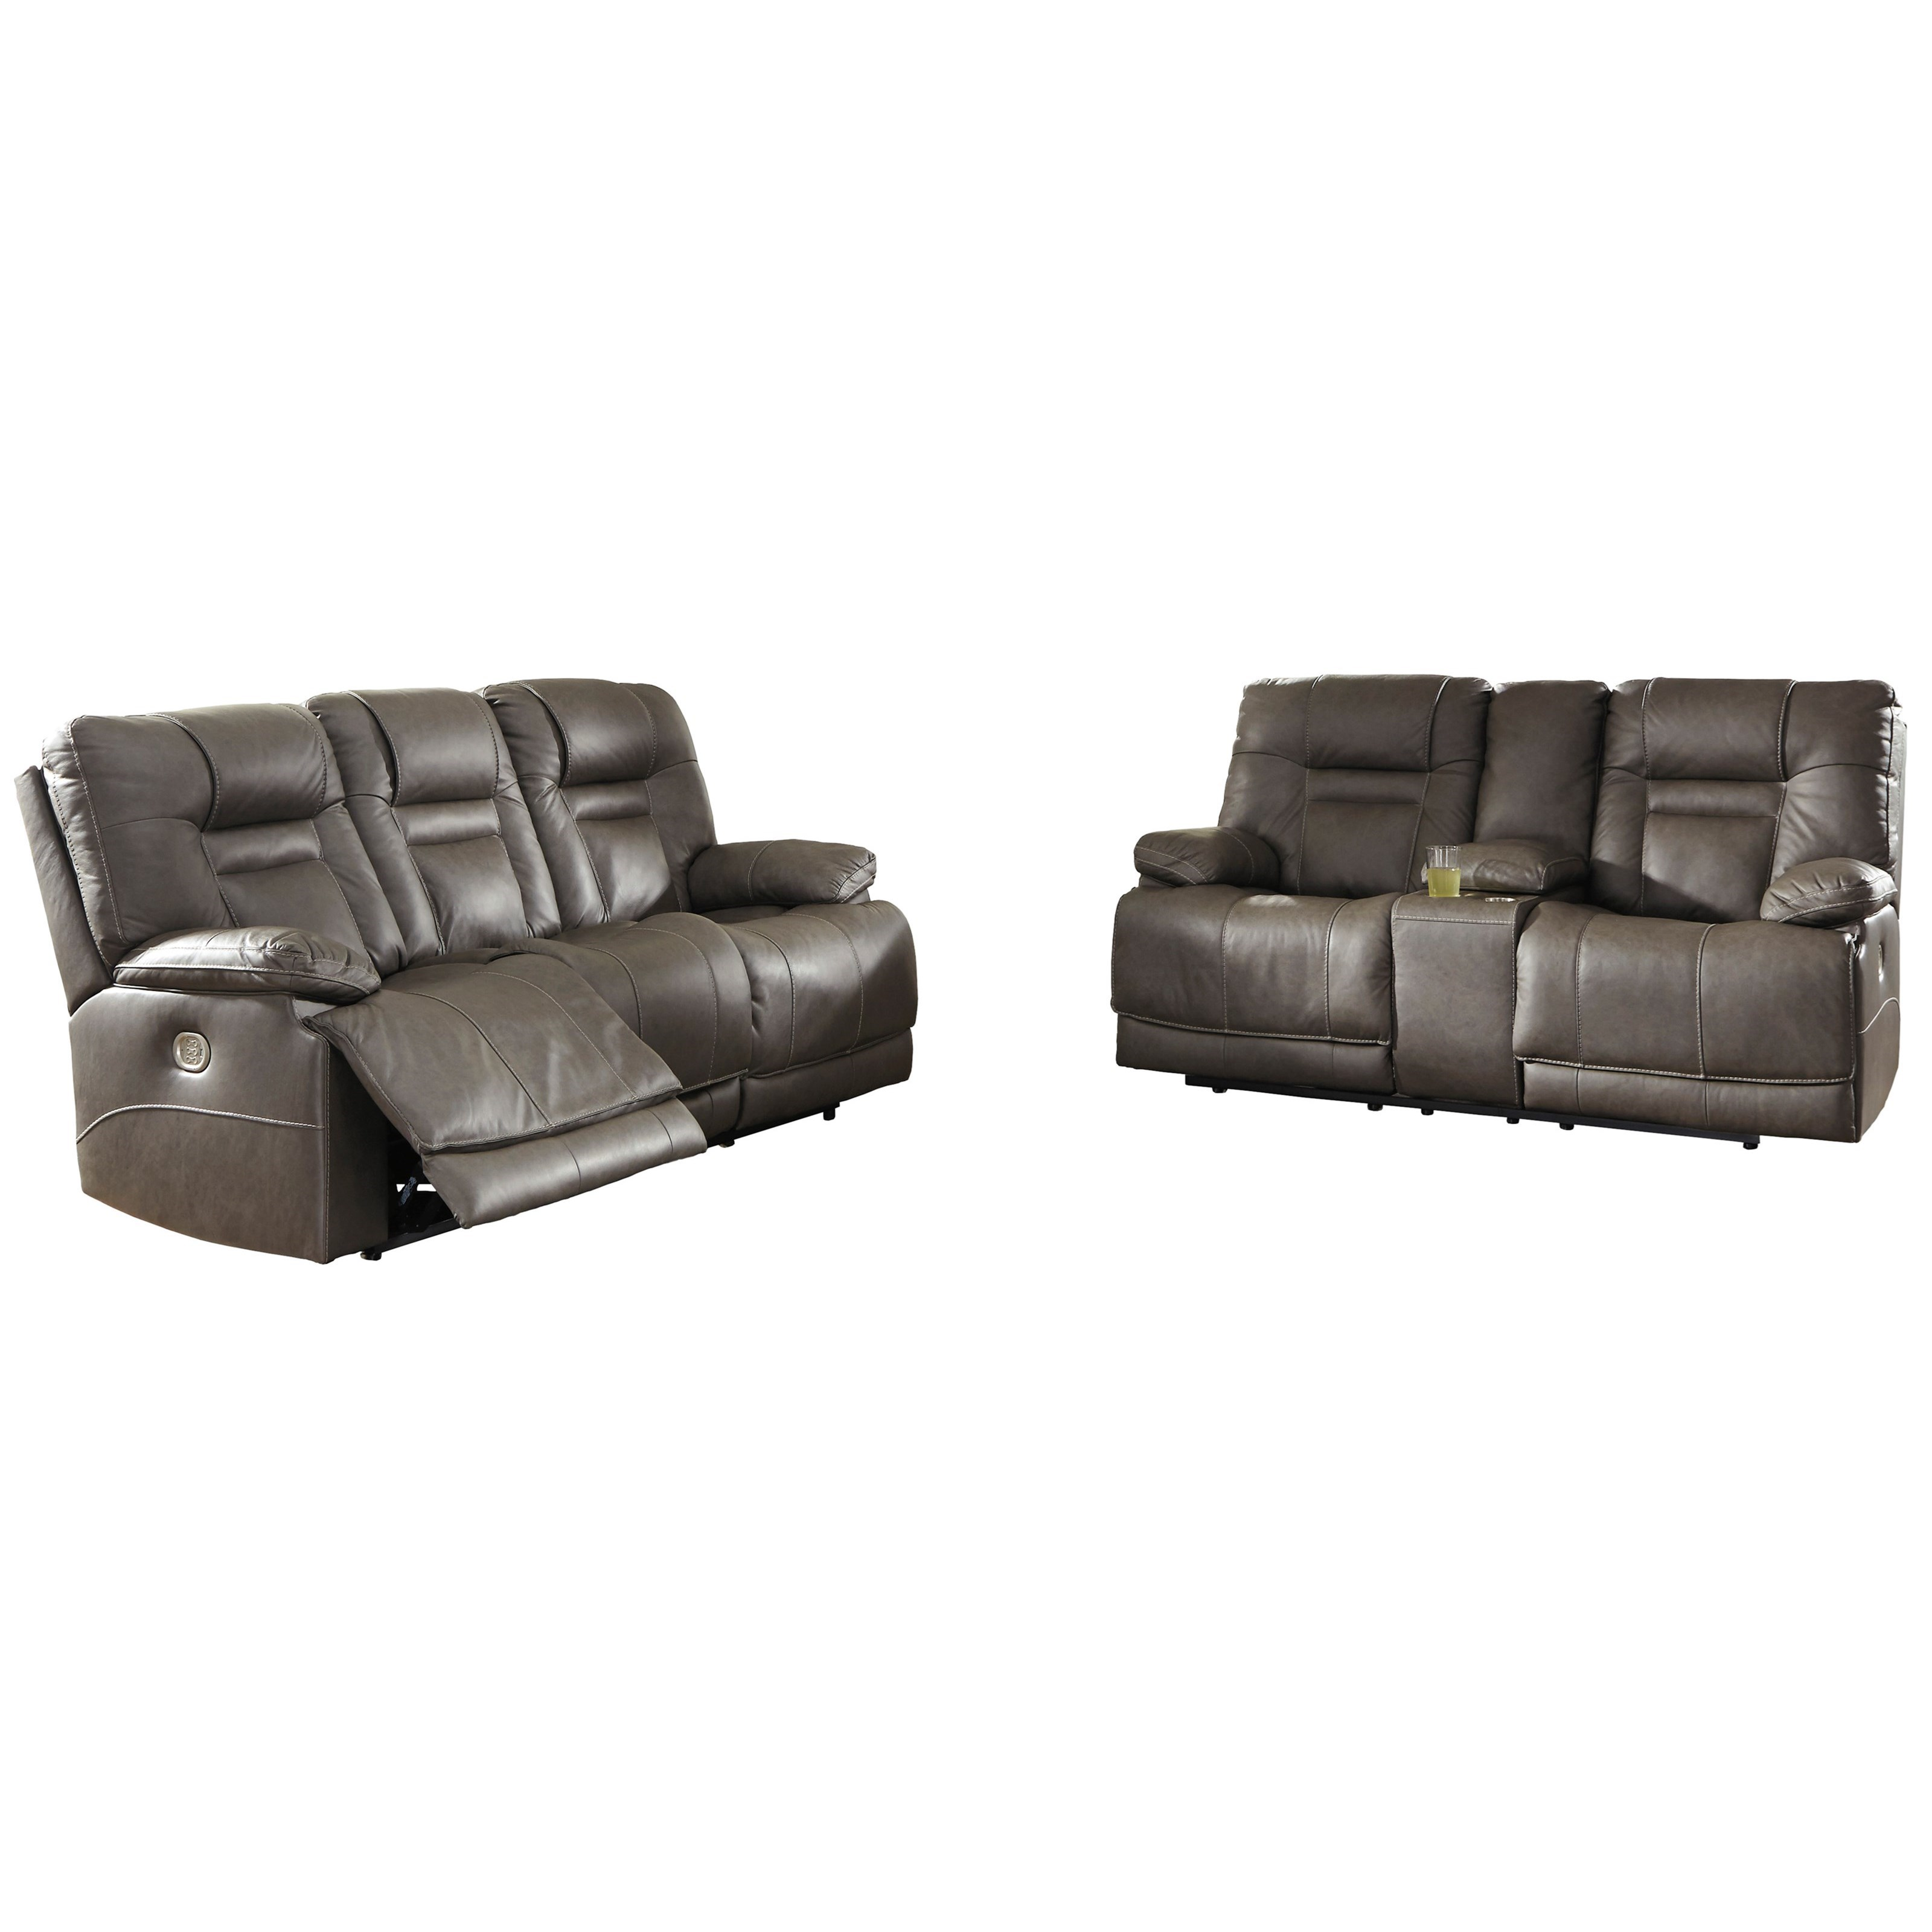 Wurstrow Reclining Living Room Group by Signature Design by Ashley at Northeast Factory Direct